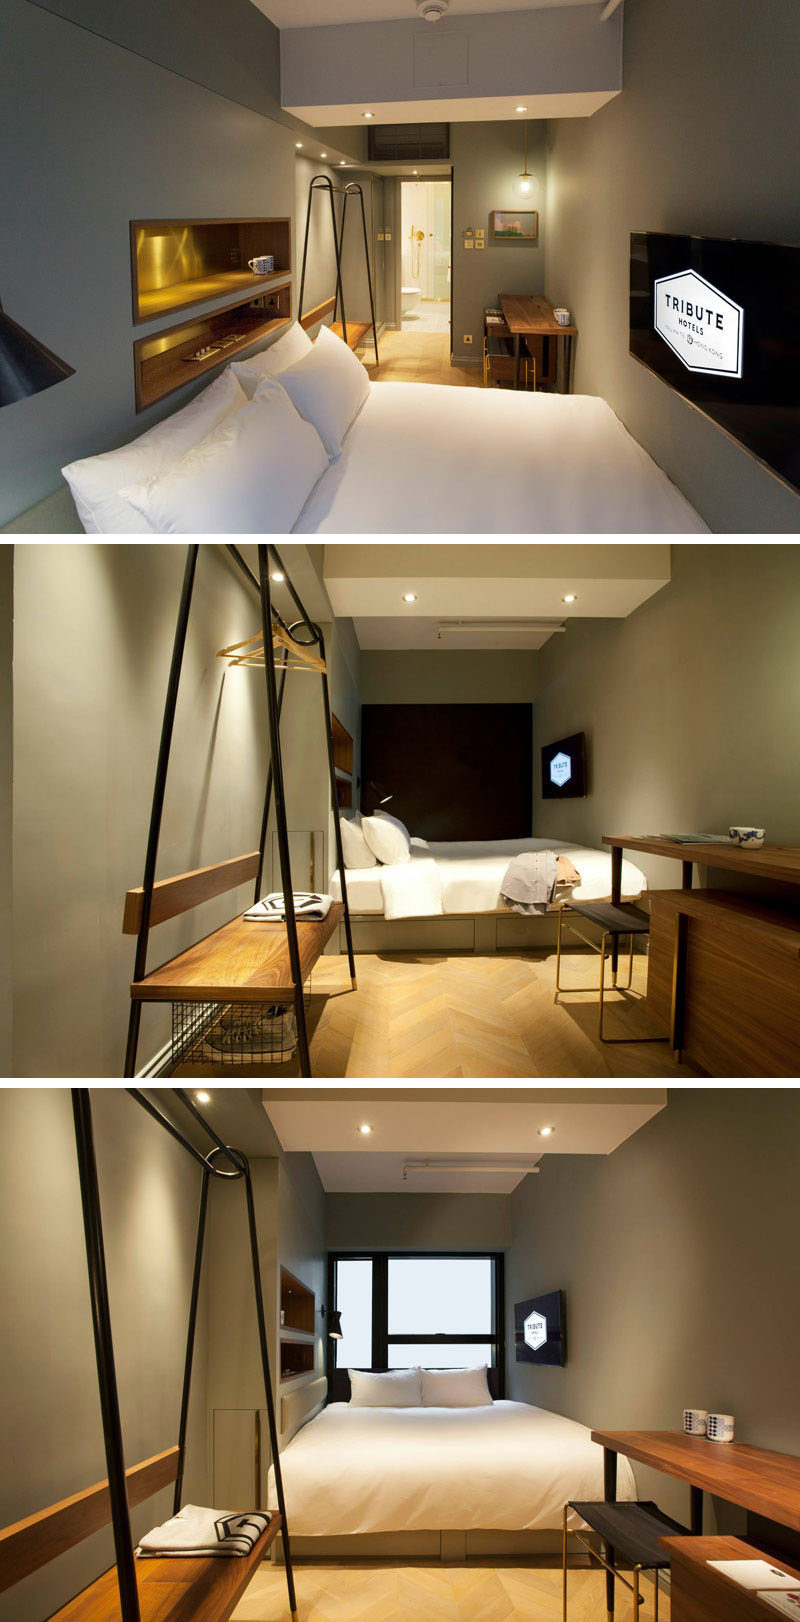 8 small hotel rooms that maximize their tiny space contemporist - Small space room design image ...